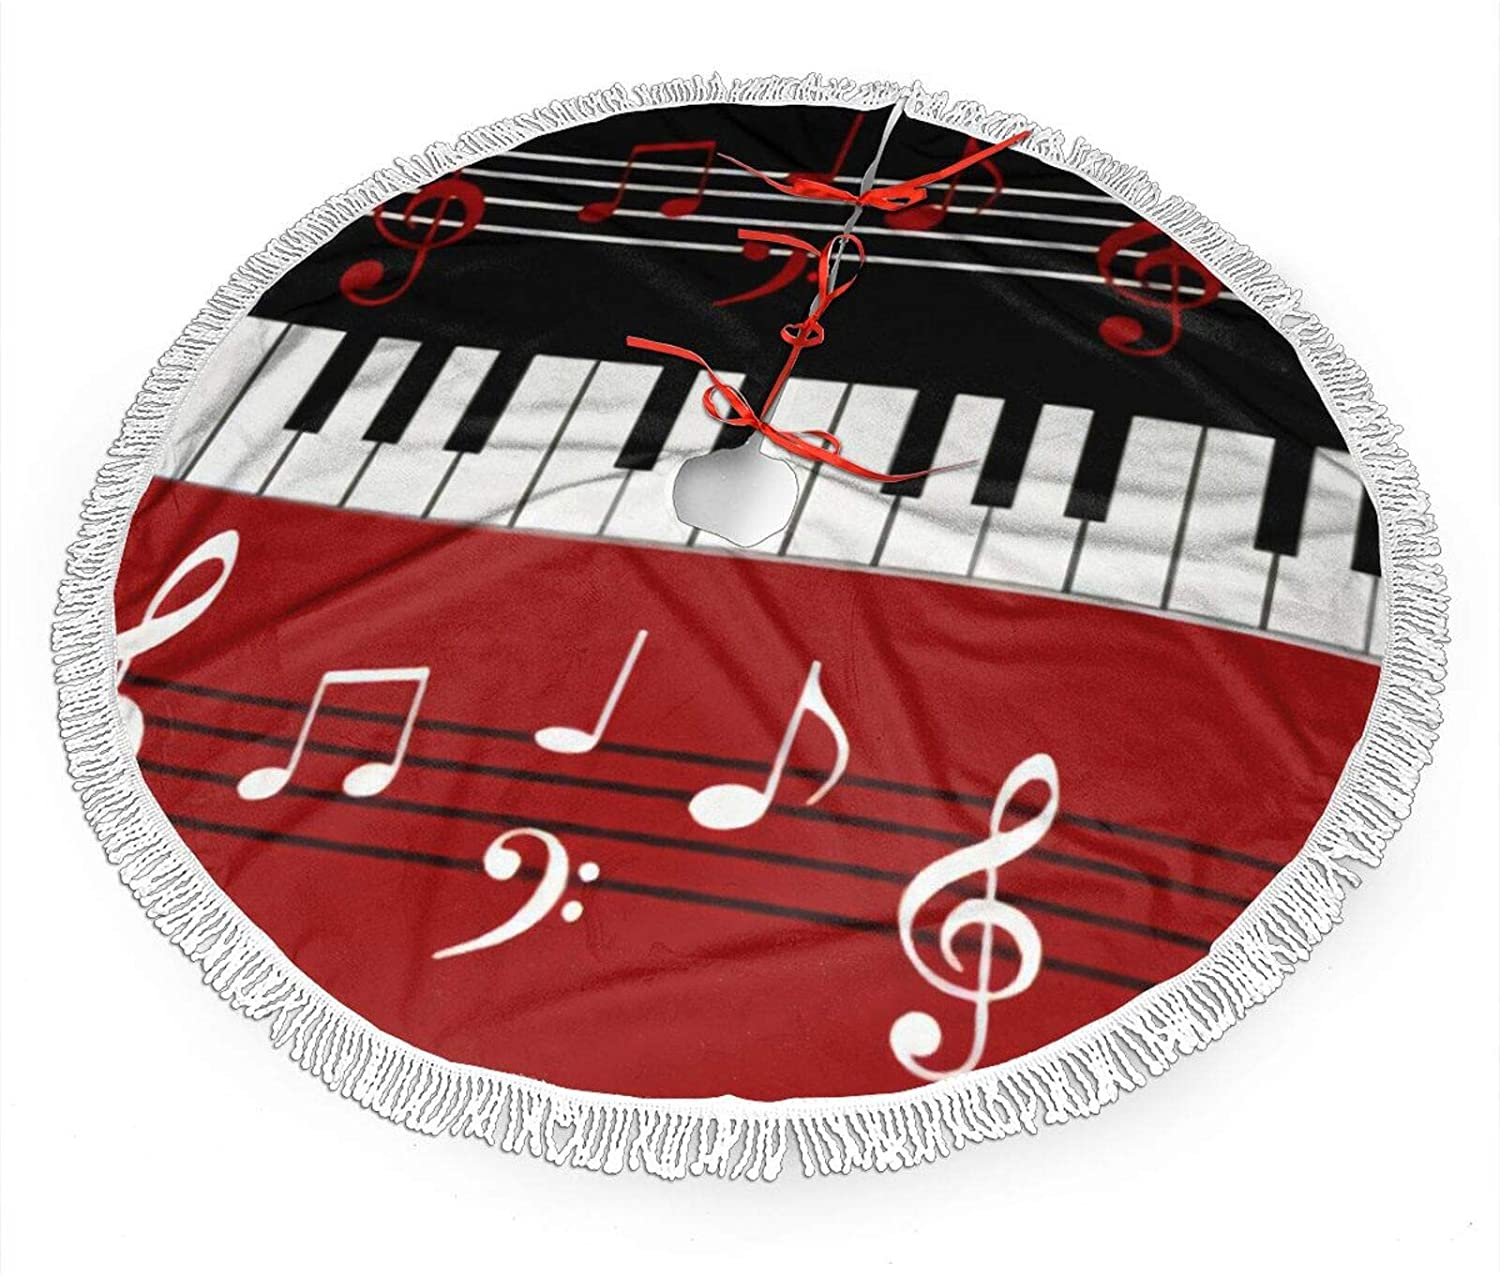 antcreptson Red Black White Piano Keys and Notes Christmas Tree Skirt 30-inch Holiday Christmas Tree Skirt Christmas Tree Skirt Ornaments Christmas Skirt Indoor Indoor Outdoor